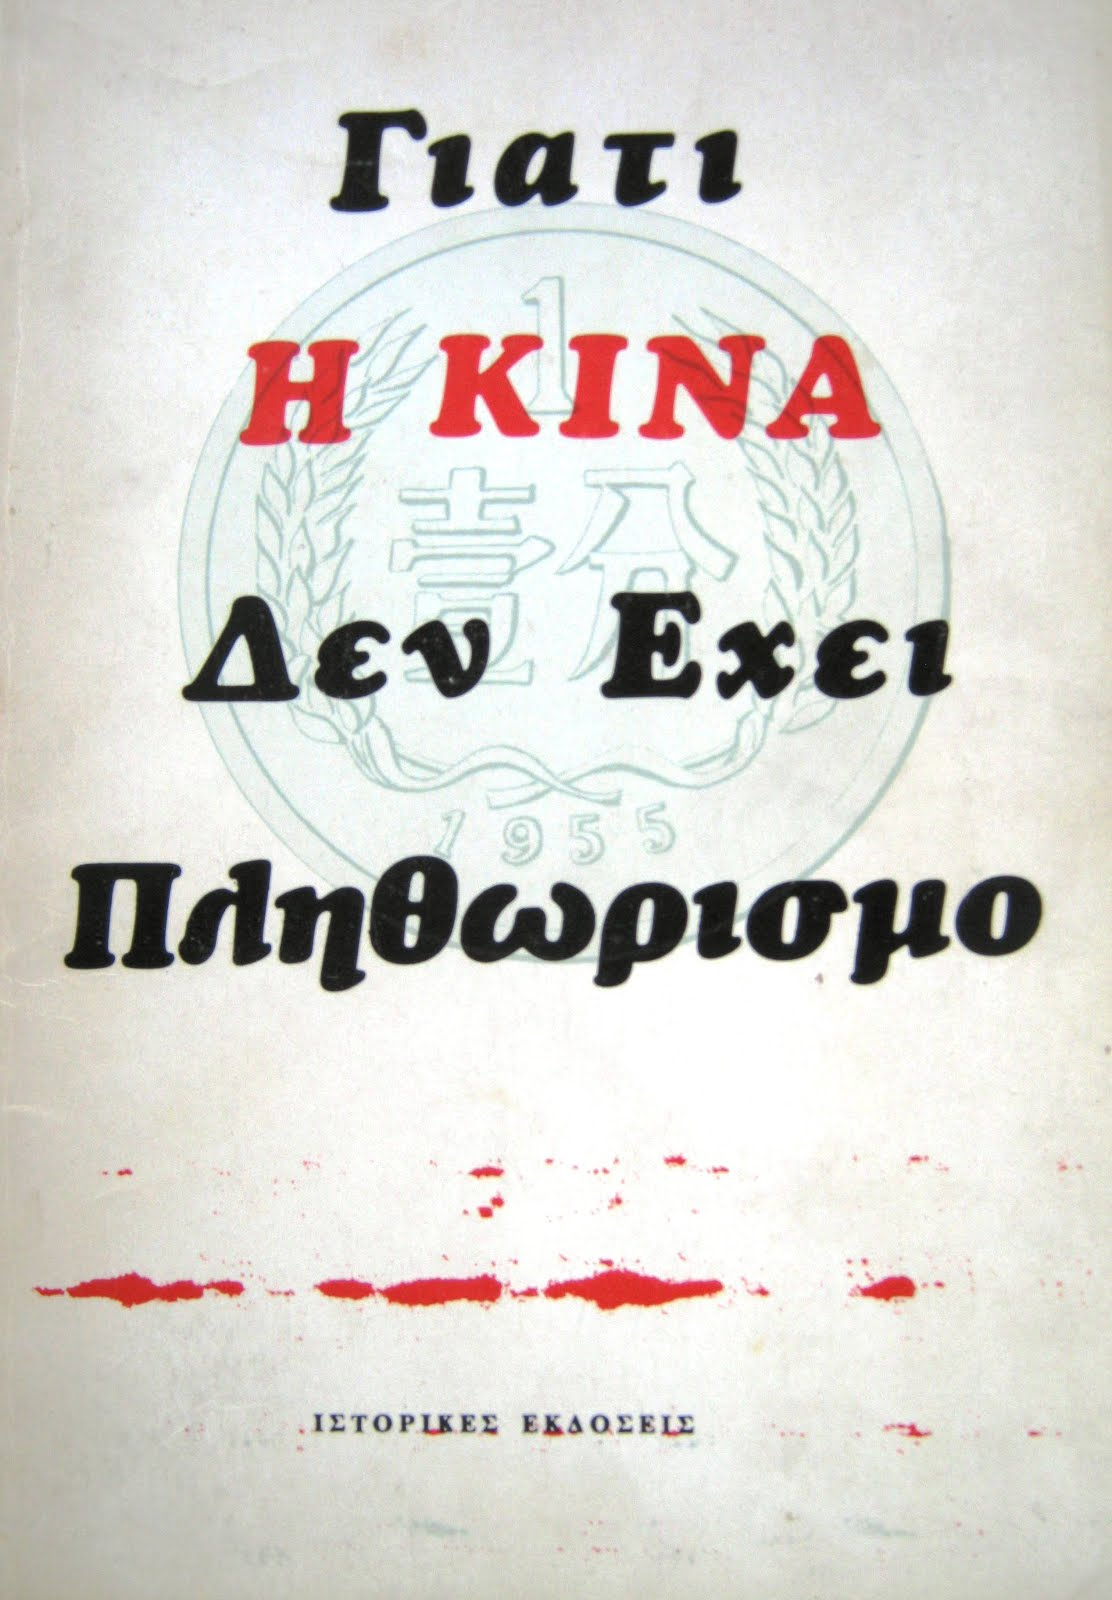 ΓΙΑΤΙ Η ΚΙΝΑ ΔΕΝ ΕΧΕΙ ΠΛΗΘΩΡΙΣΜΟ